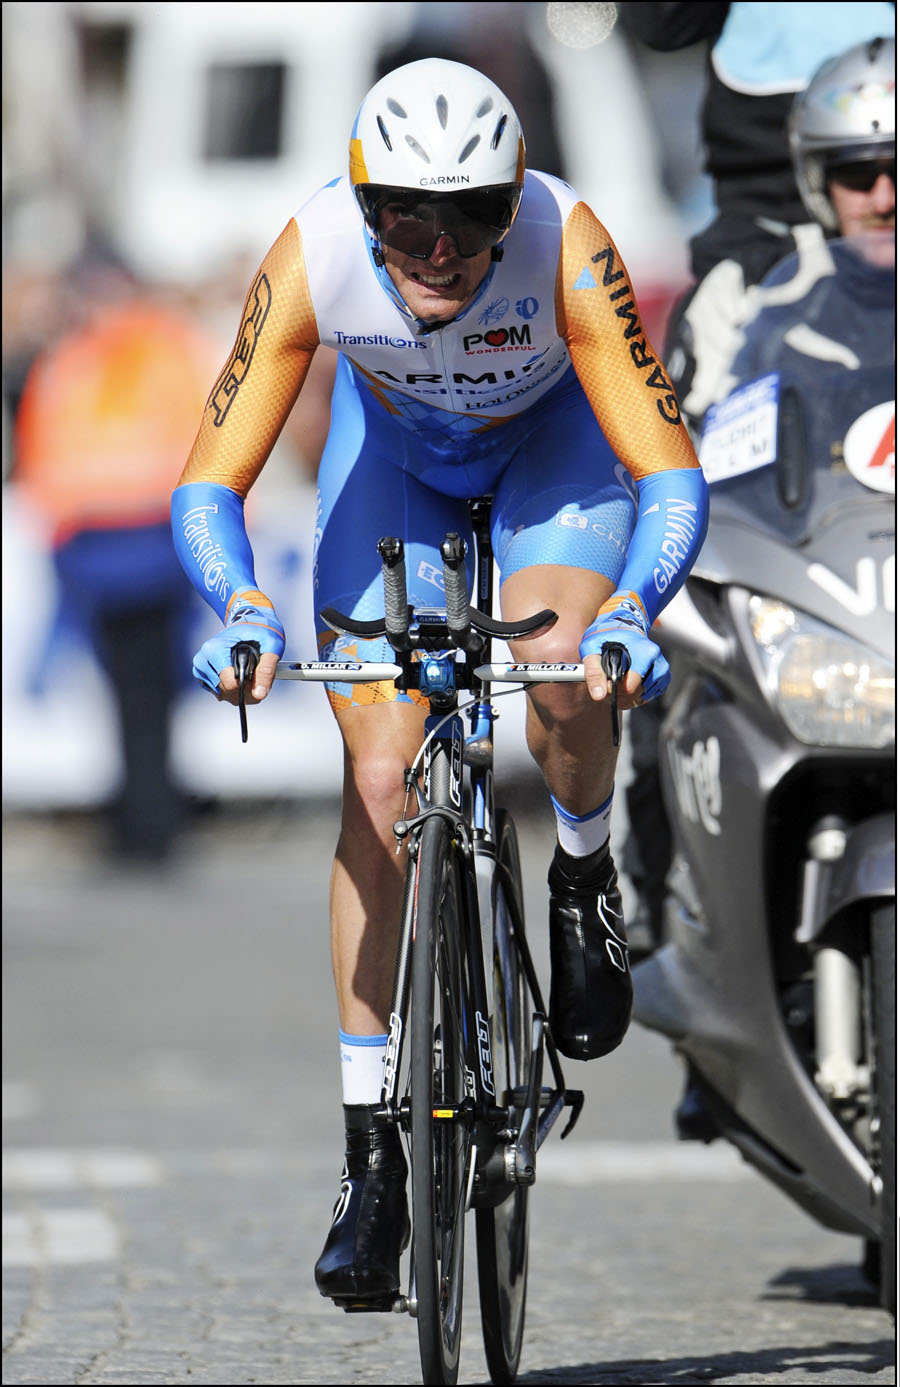 David Millar wins stage 3b, Three Days of De Panne 2010